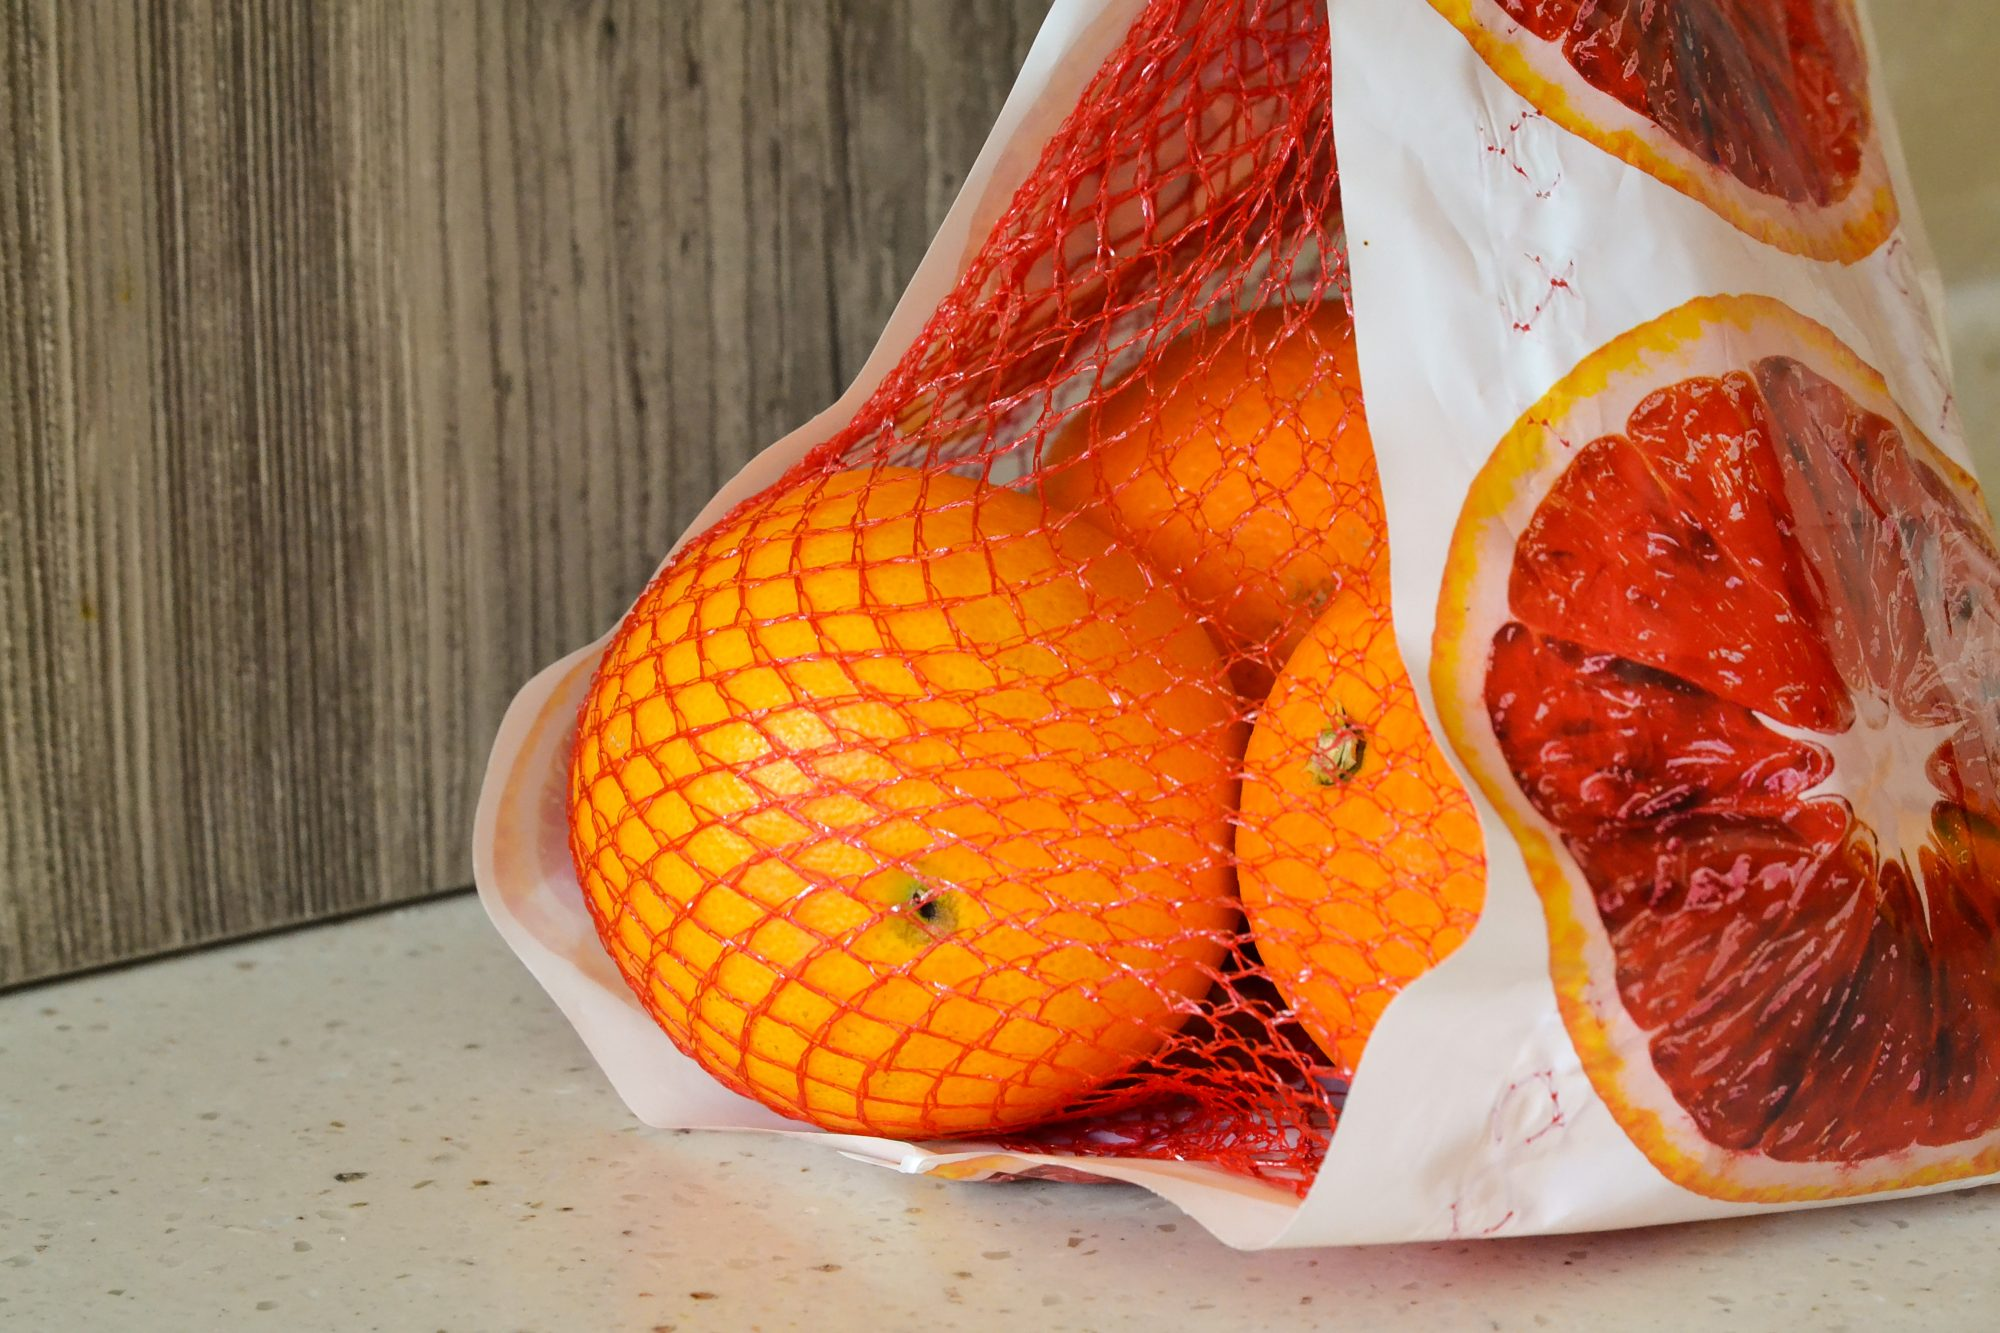 Why You Should Keep those Plastic Mesh Produce Bags